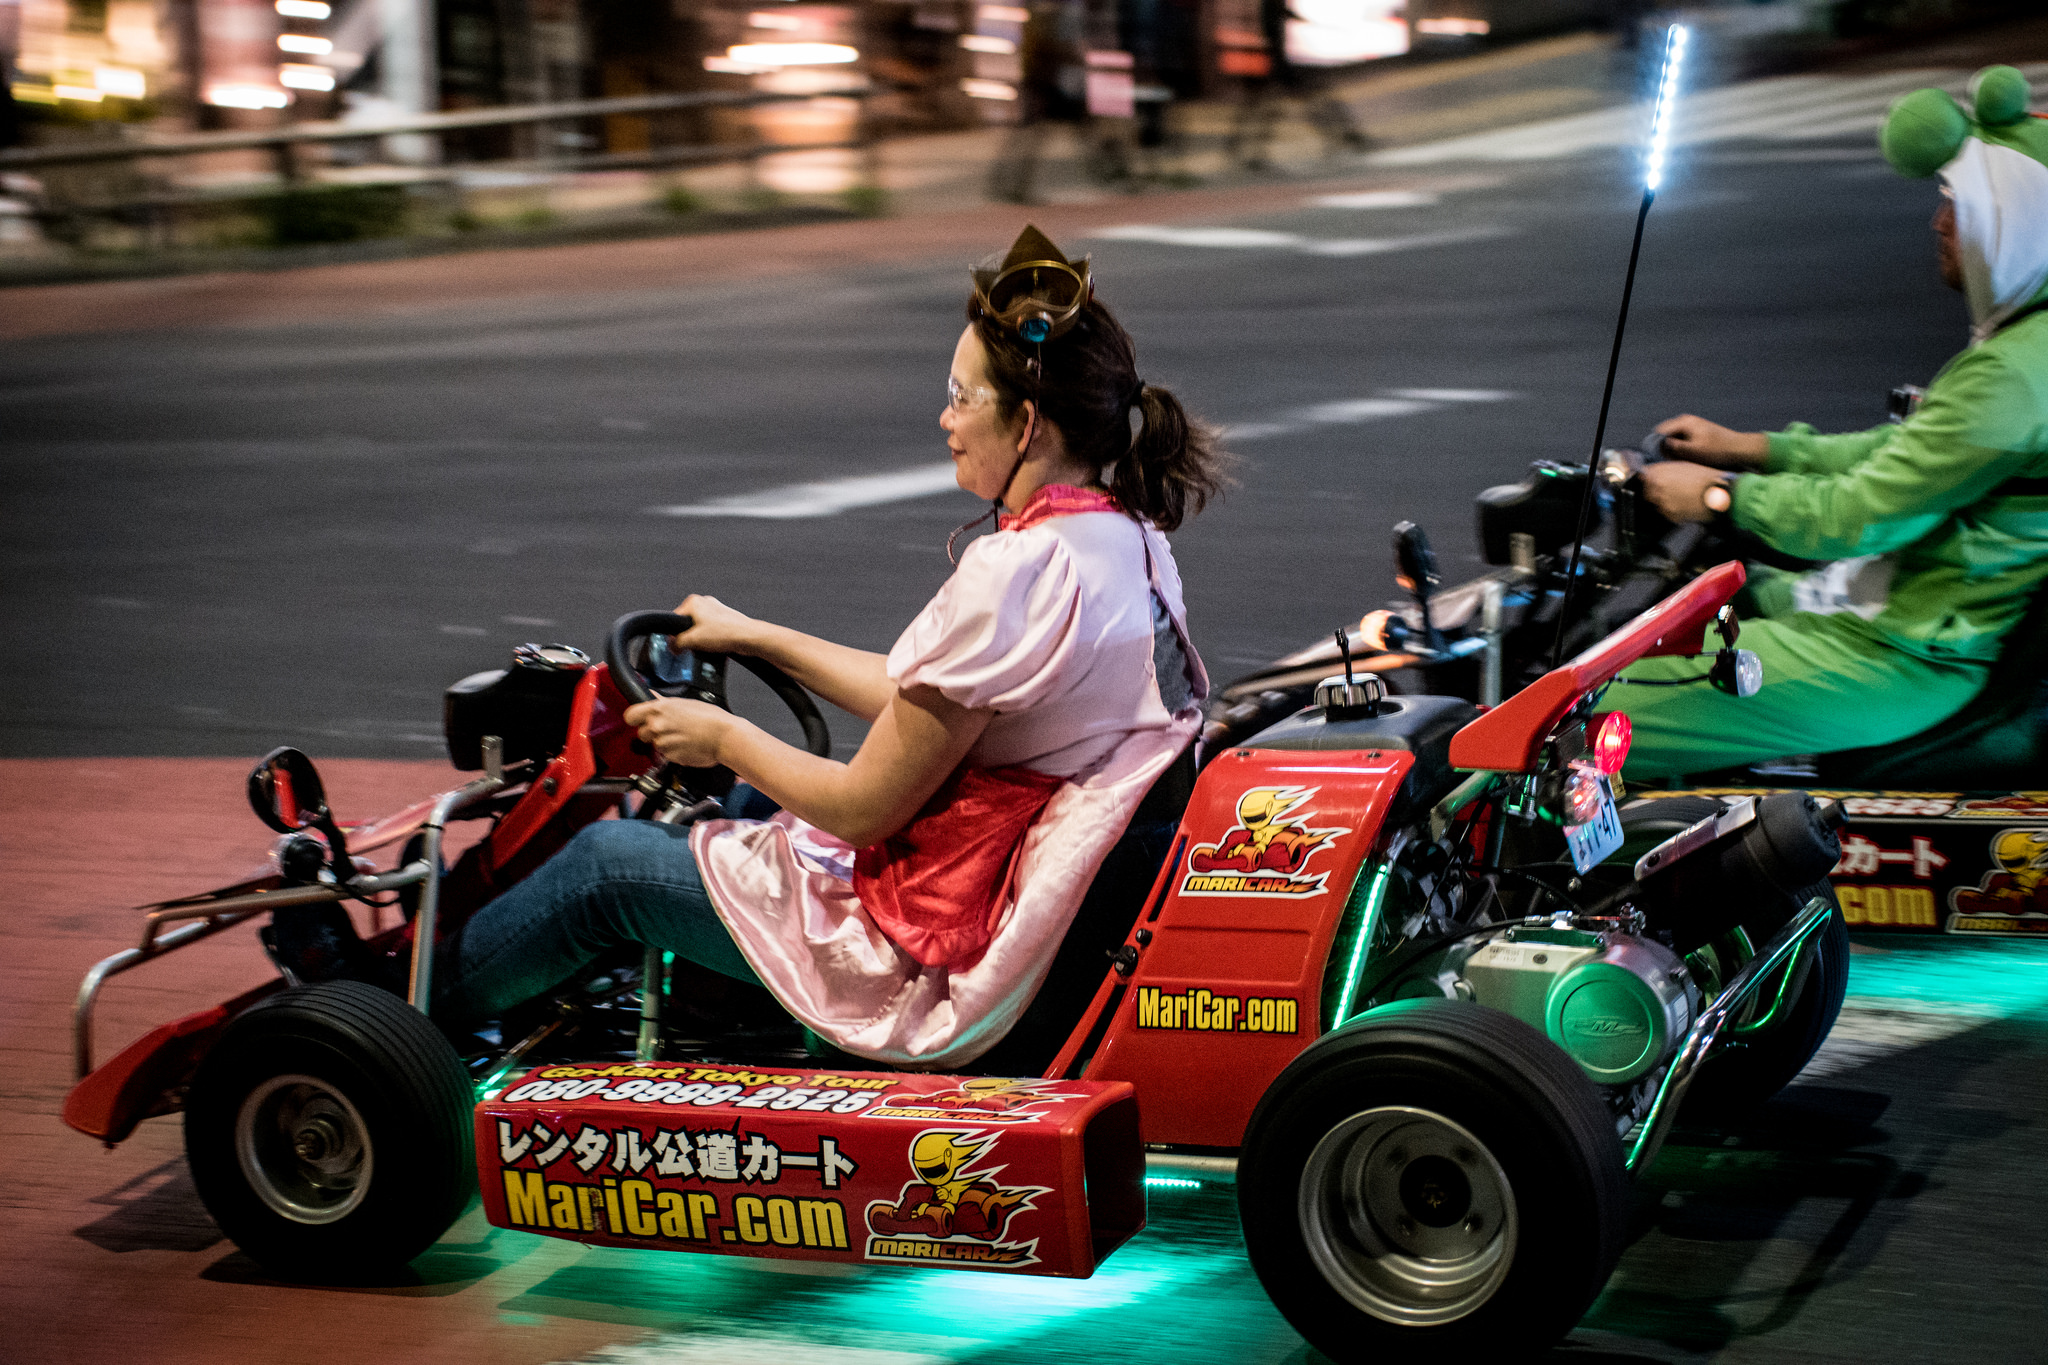 Mario Kart in Tokyo: Everything You Need to Know | Tokyo Cheapo